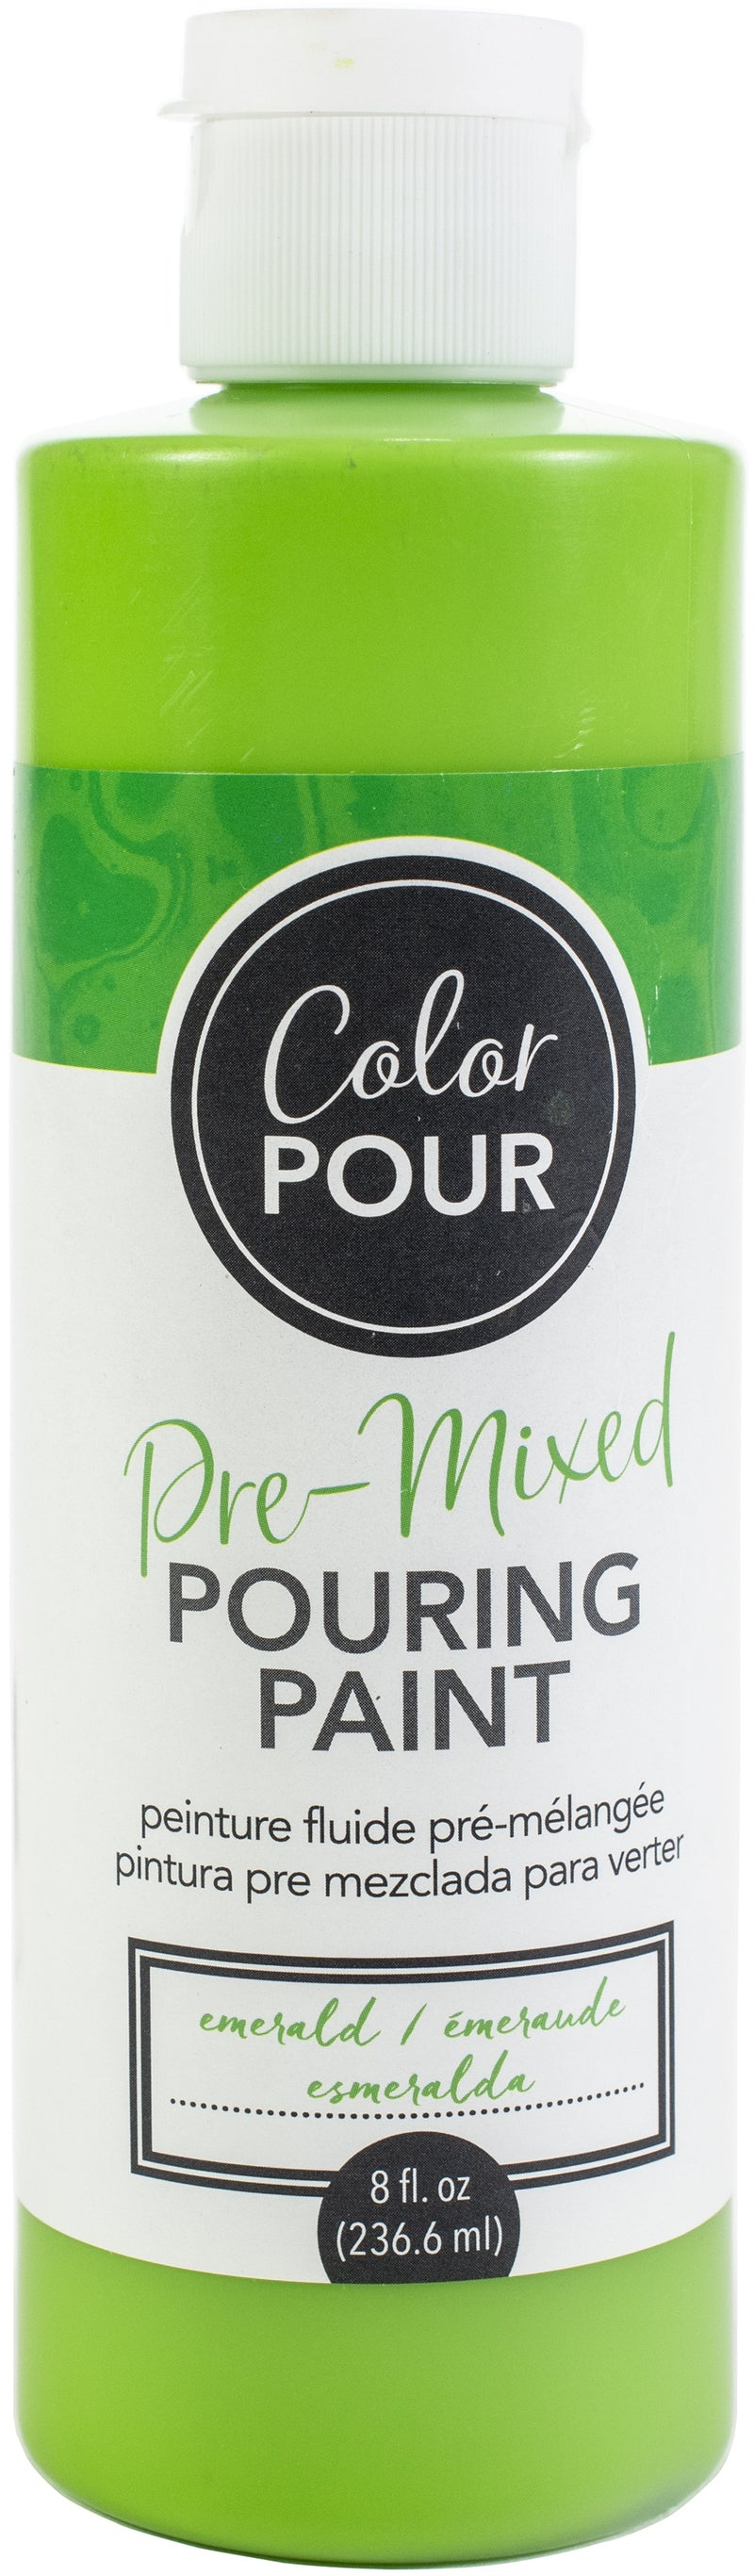 American Crafts Color Pour Pre-Mixed Paint 8oz-Emerald